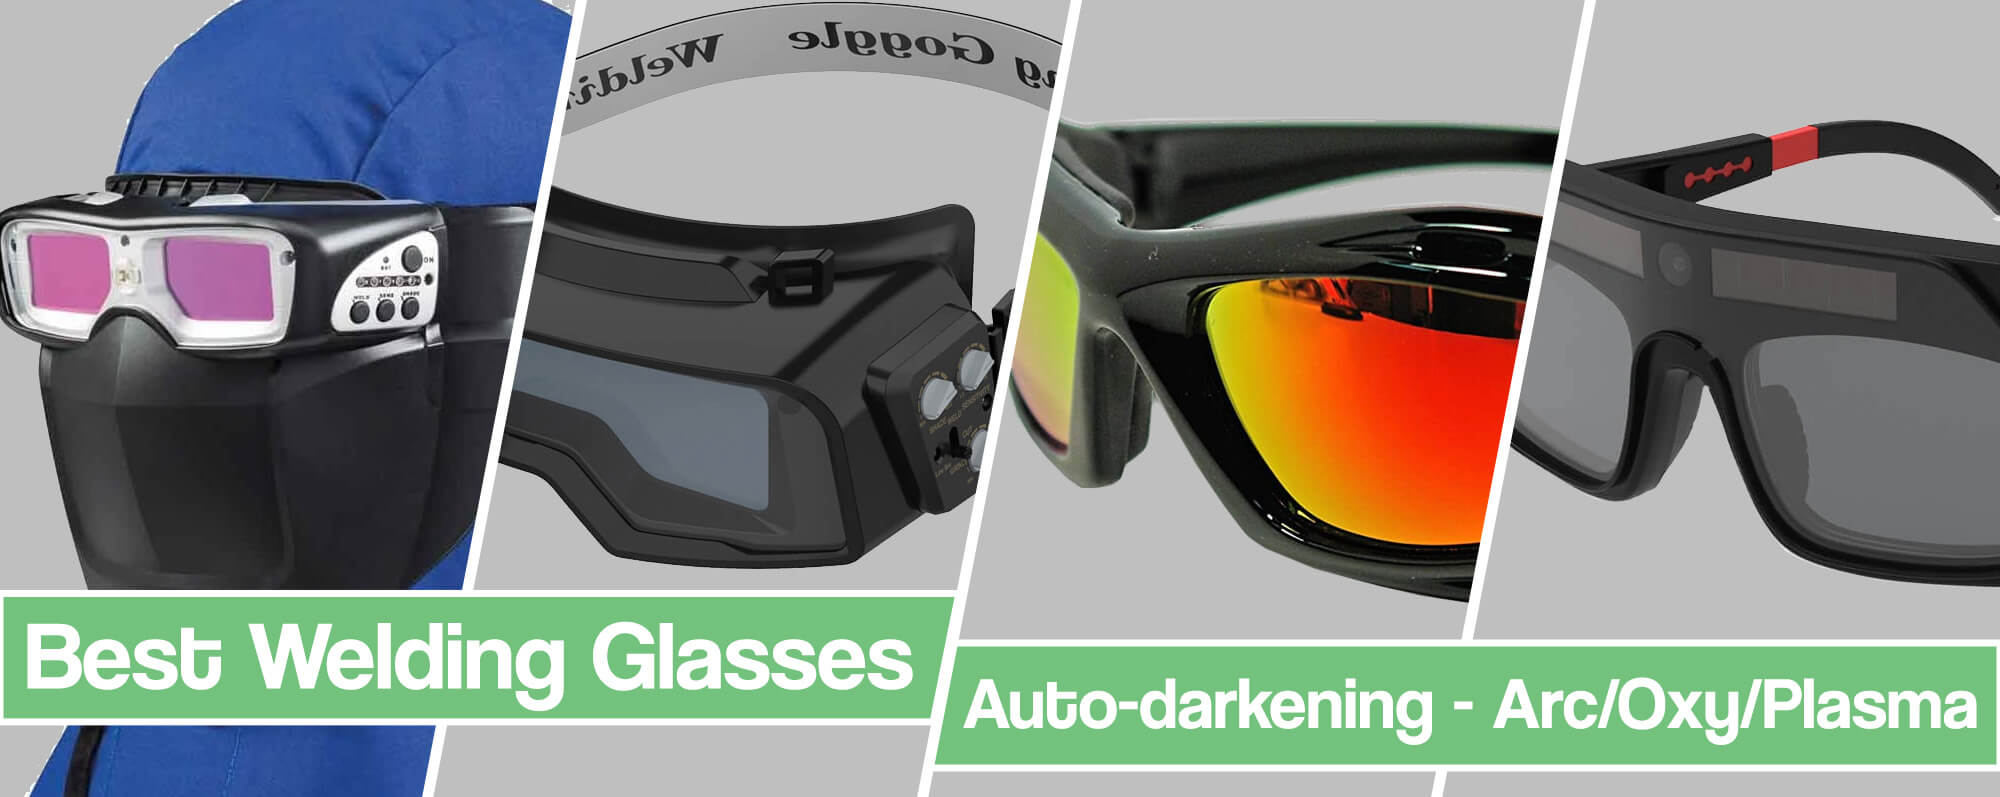 Feature image for Best Welding Glasses article